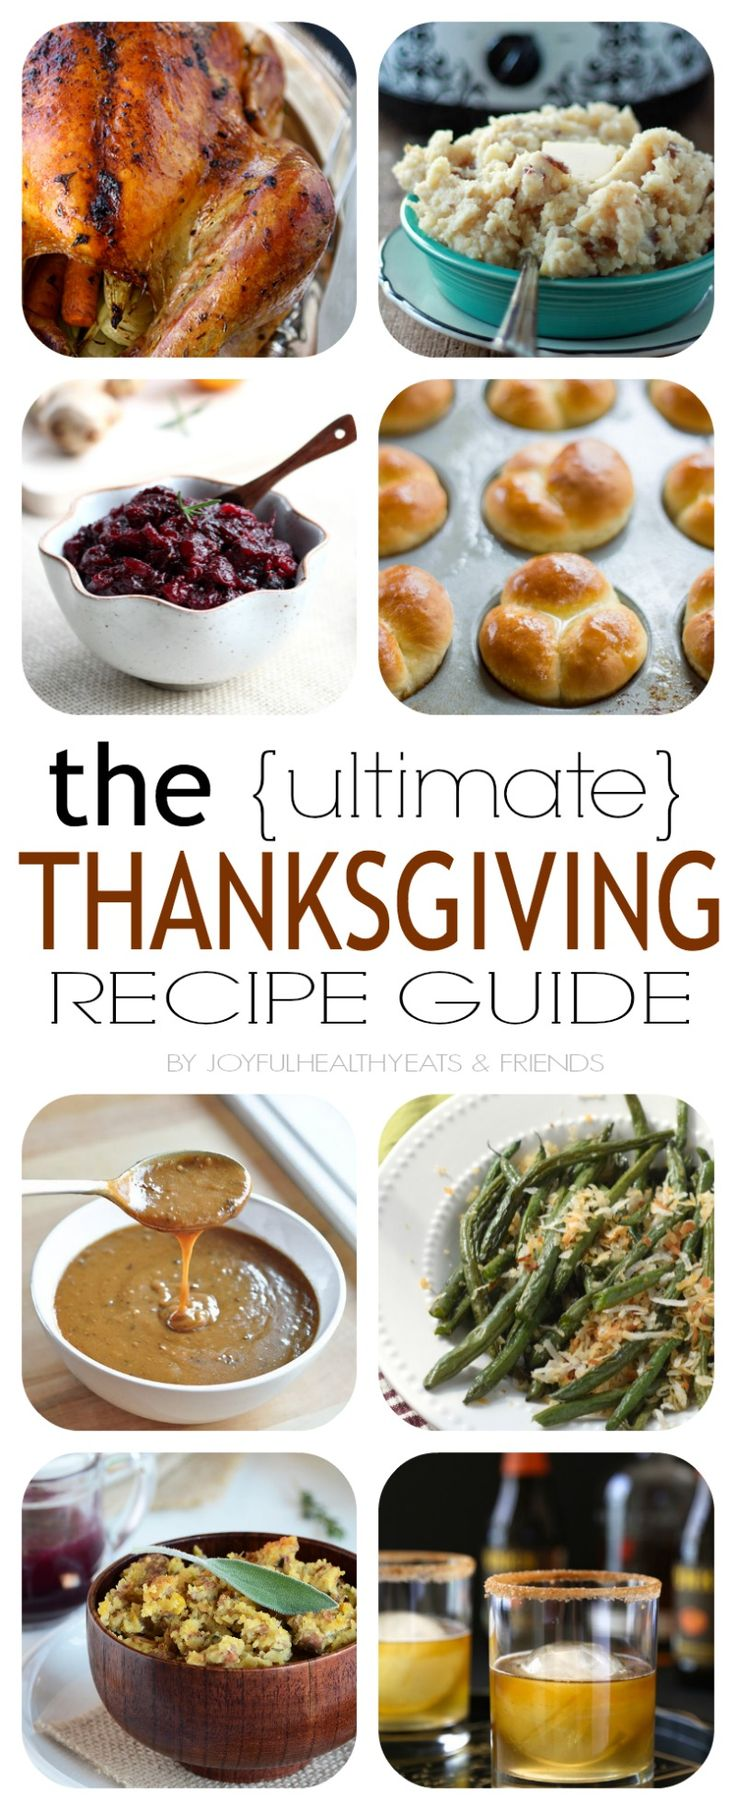 The Ultimate Thanksgiving Recipe Guide with all your favorite heavy hitters, Roasted Turkey, Lump Free Gravy, Homemade Dinner Rolls, and Pumpkin Pie. Come and get it!   www.joyfulhealthyeats.com